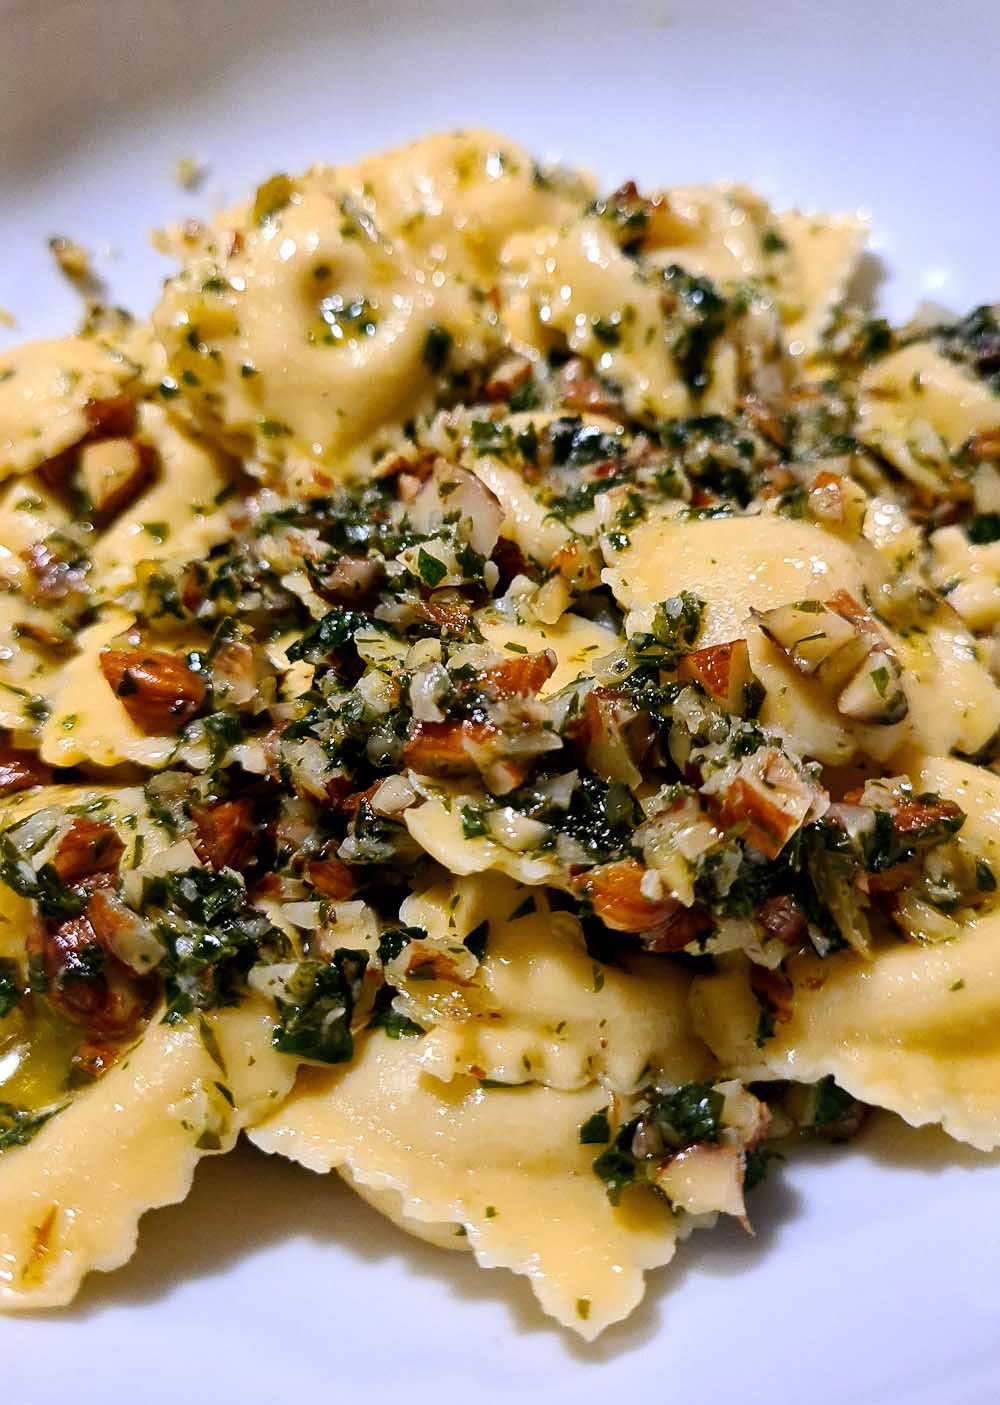 Ravioli with goat cheese and hazelnuts - Italian Notes